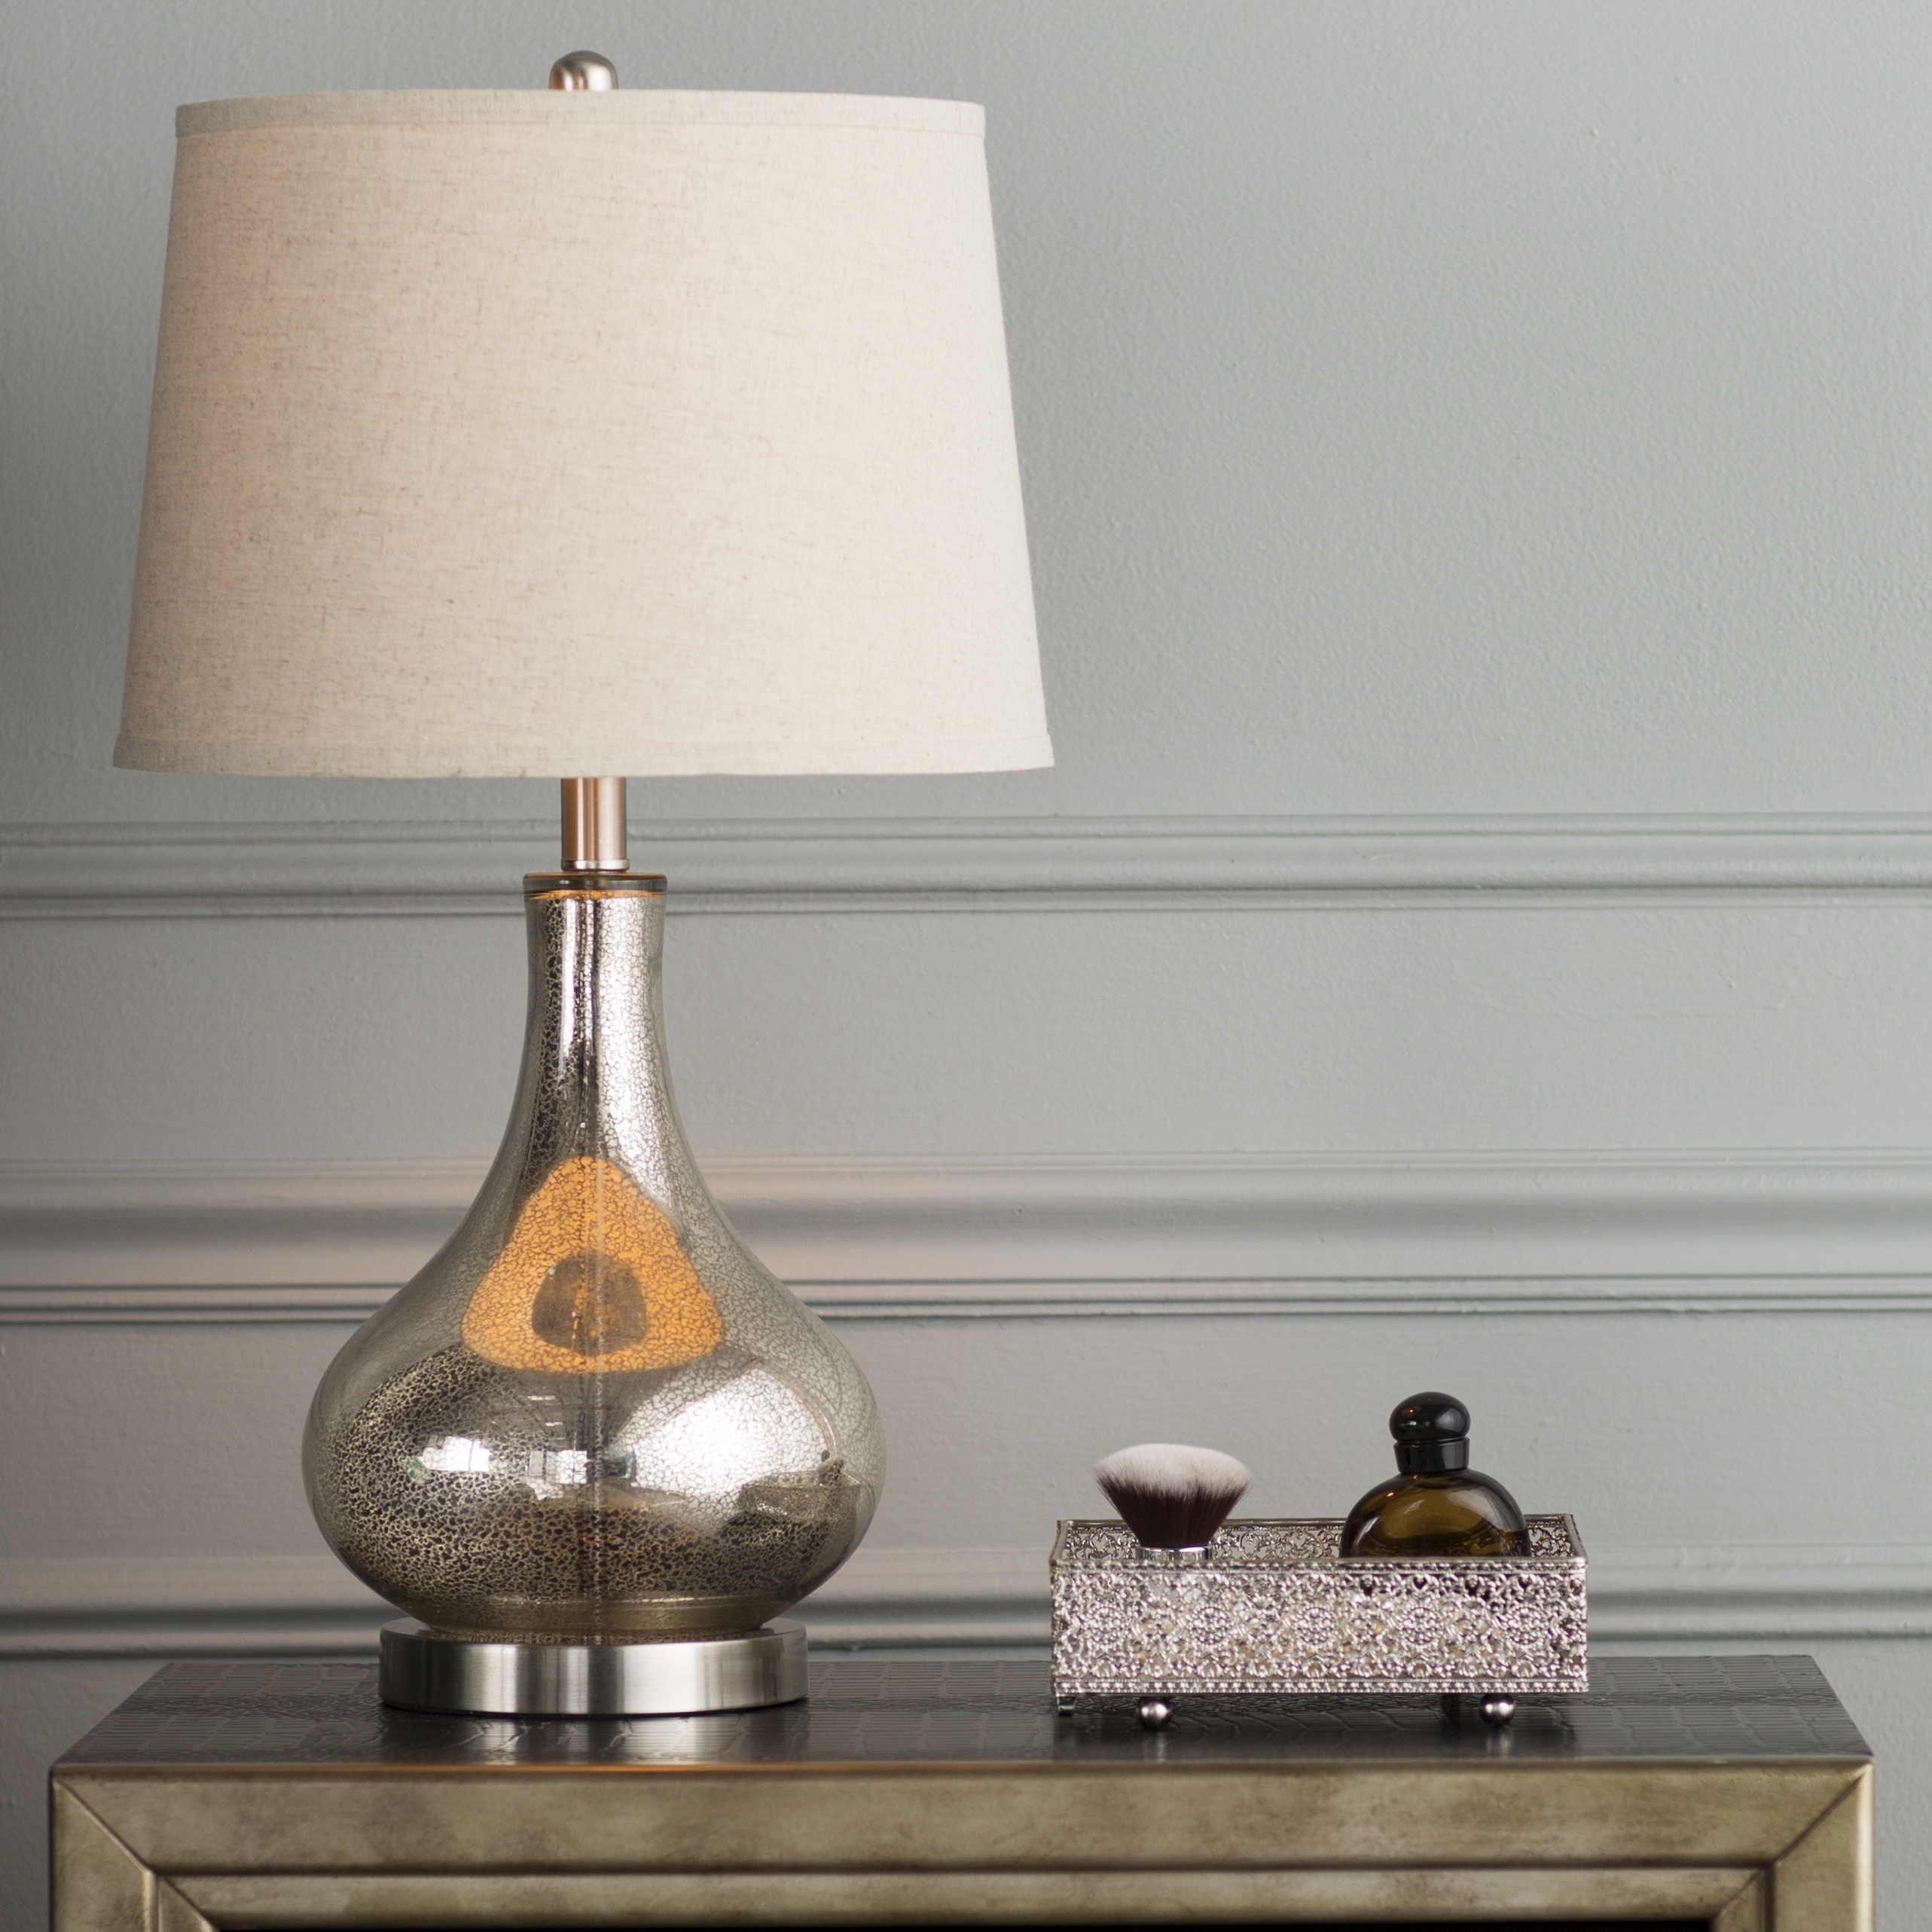 2017 Top 69 Fine Touch Table Lamps Silver Blue Lamp Living Room Wayfair Inside Silver Table Lamps For Living Room (View 15 of 15)